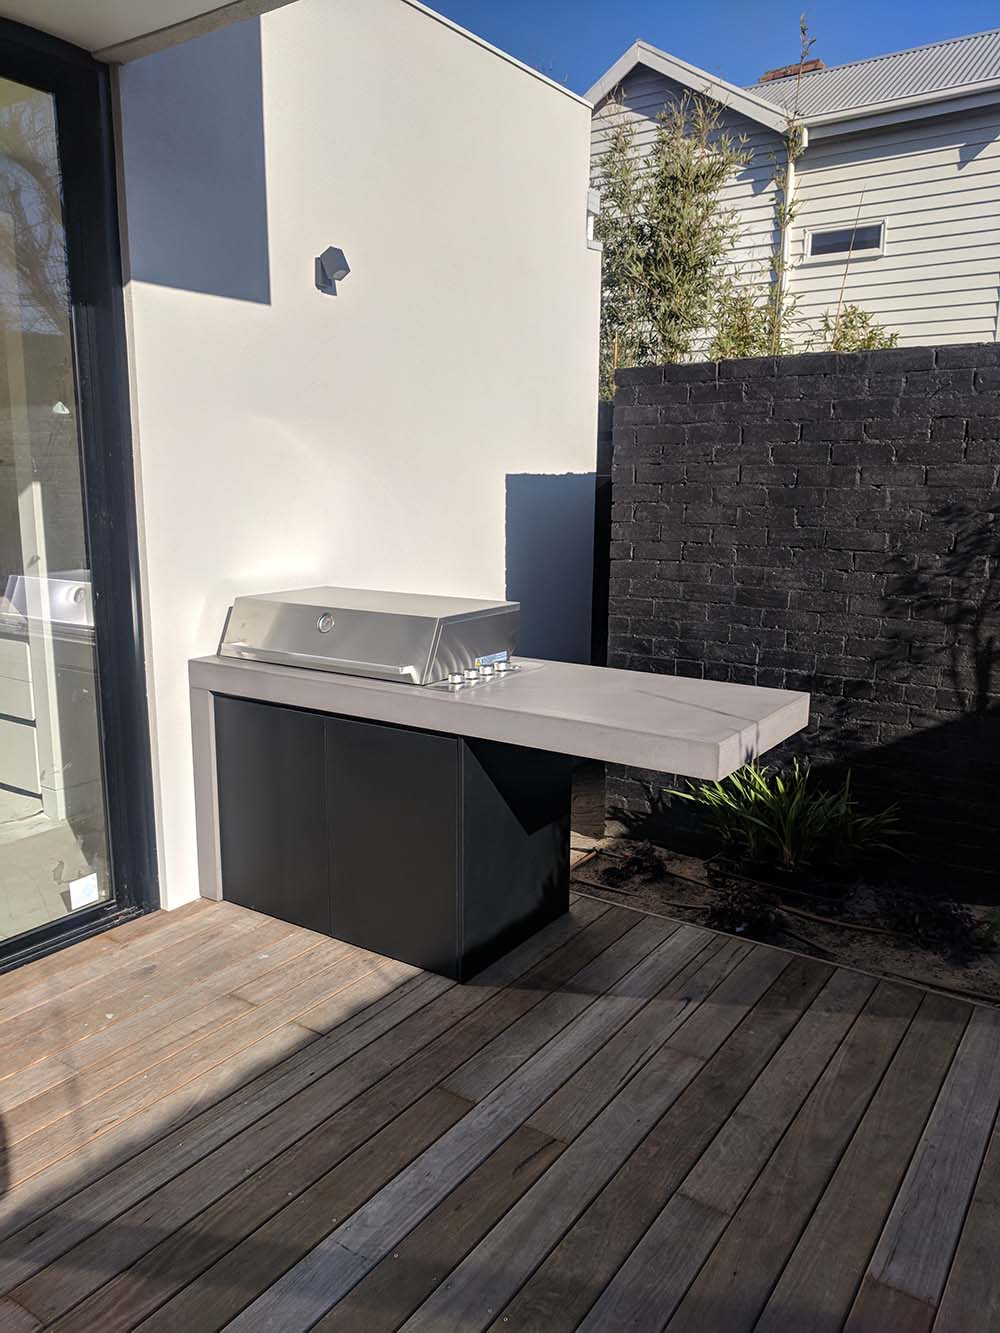 Outdoor-kitchen-melbourne-brighton-2-1